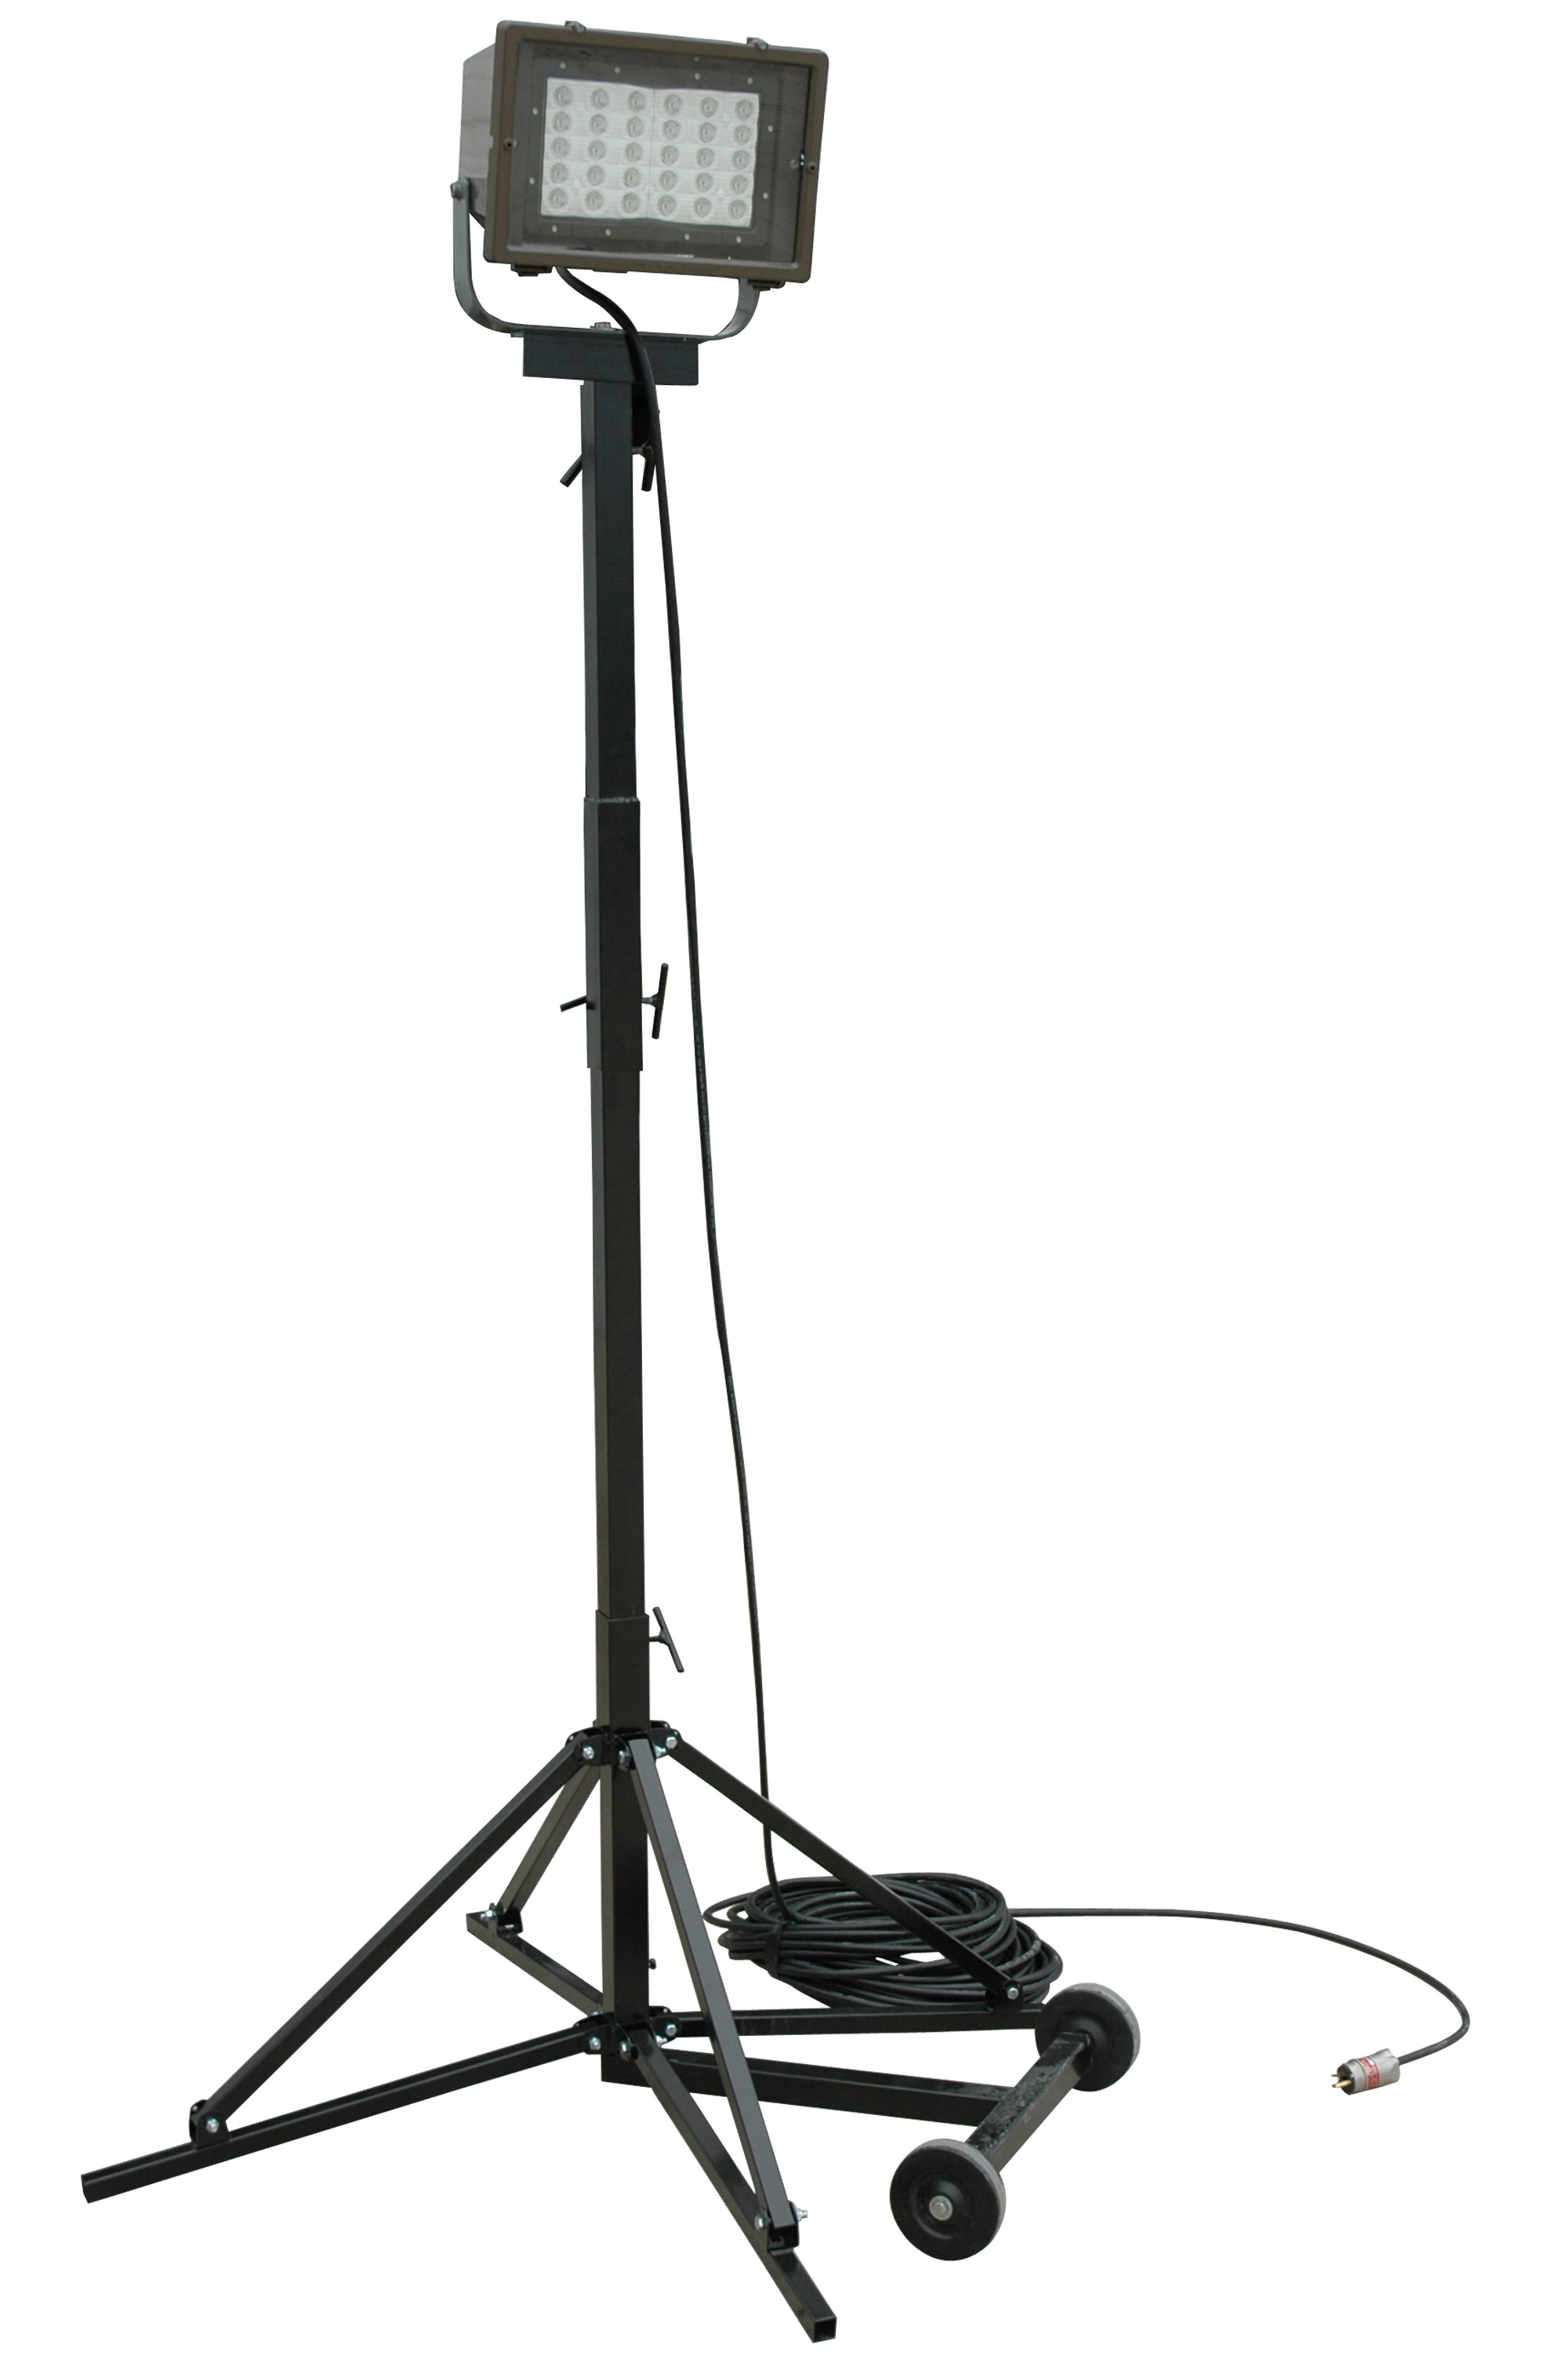 Larson Electronics Releases Adjustable Led Light Tower Designed For Hazardous Location Use